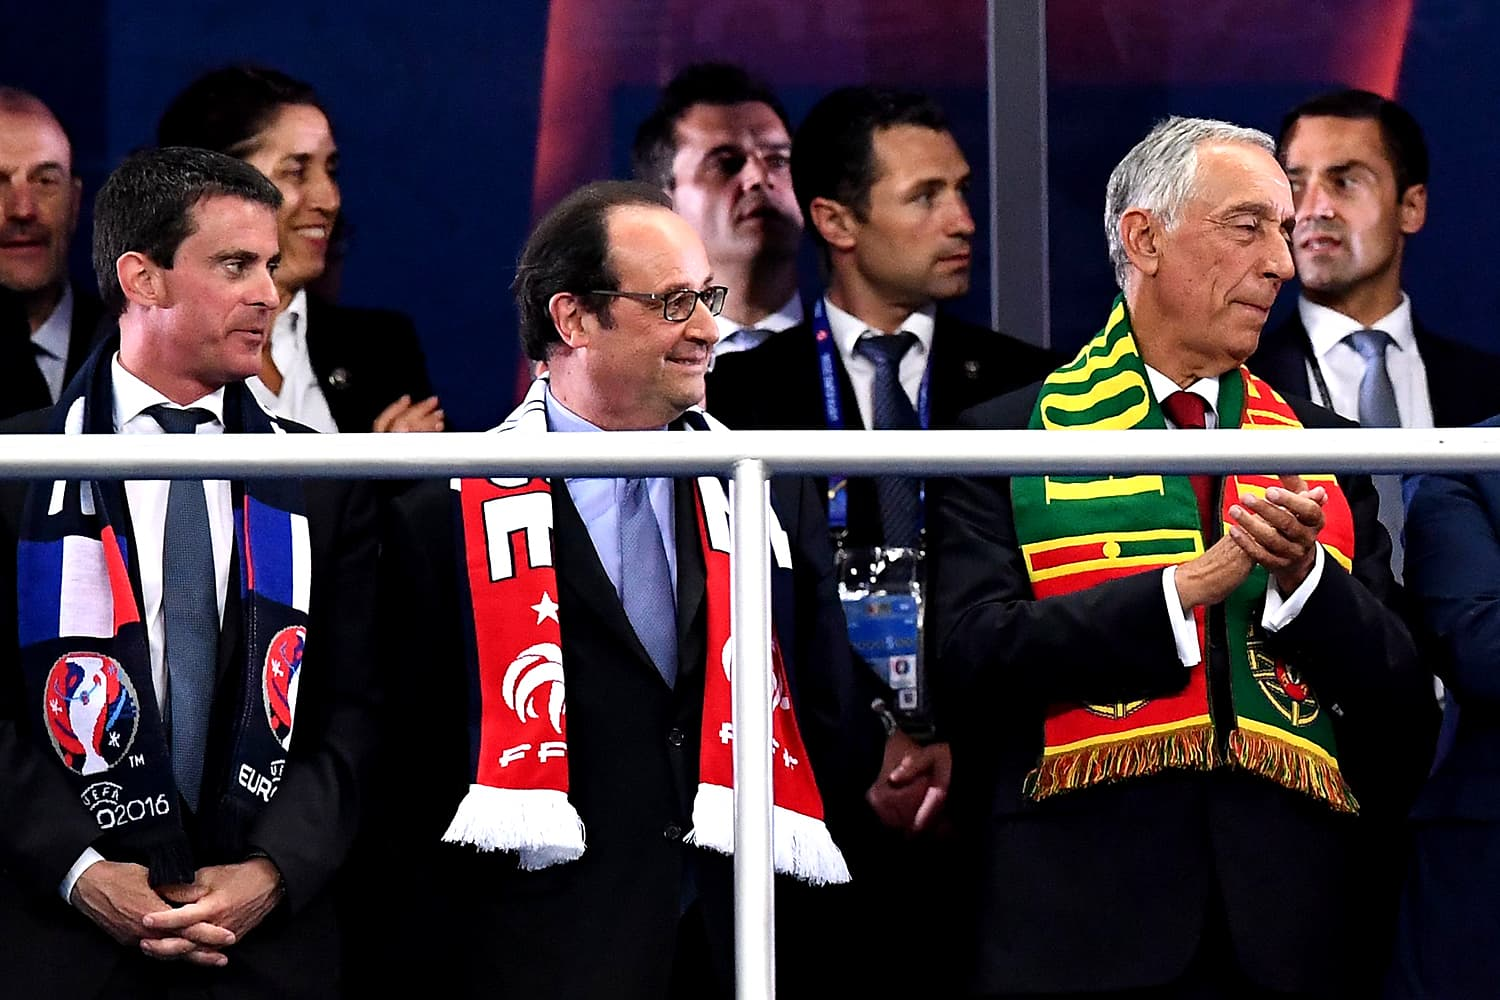 French president Francois Hollande at the venue of the Euro 2016 finale. — AFP